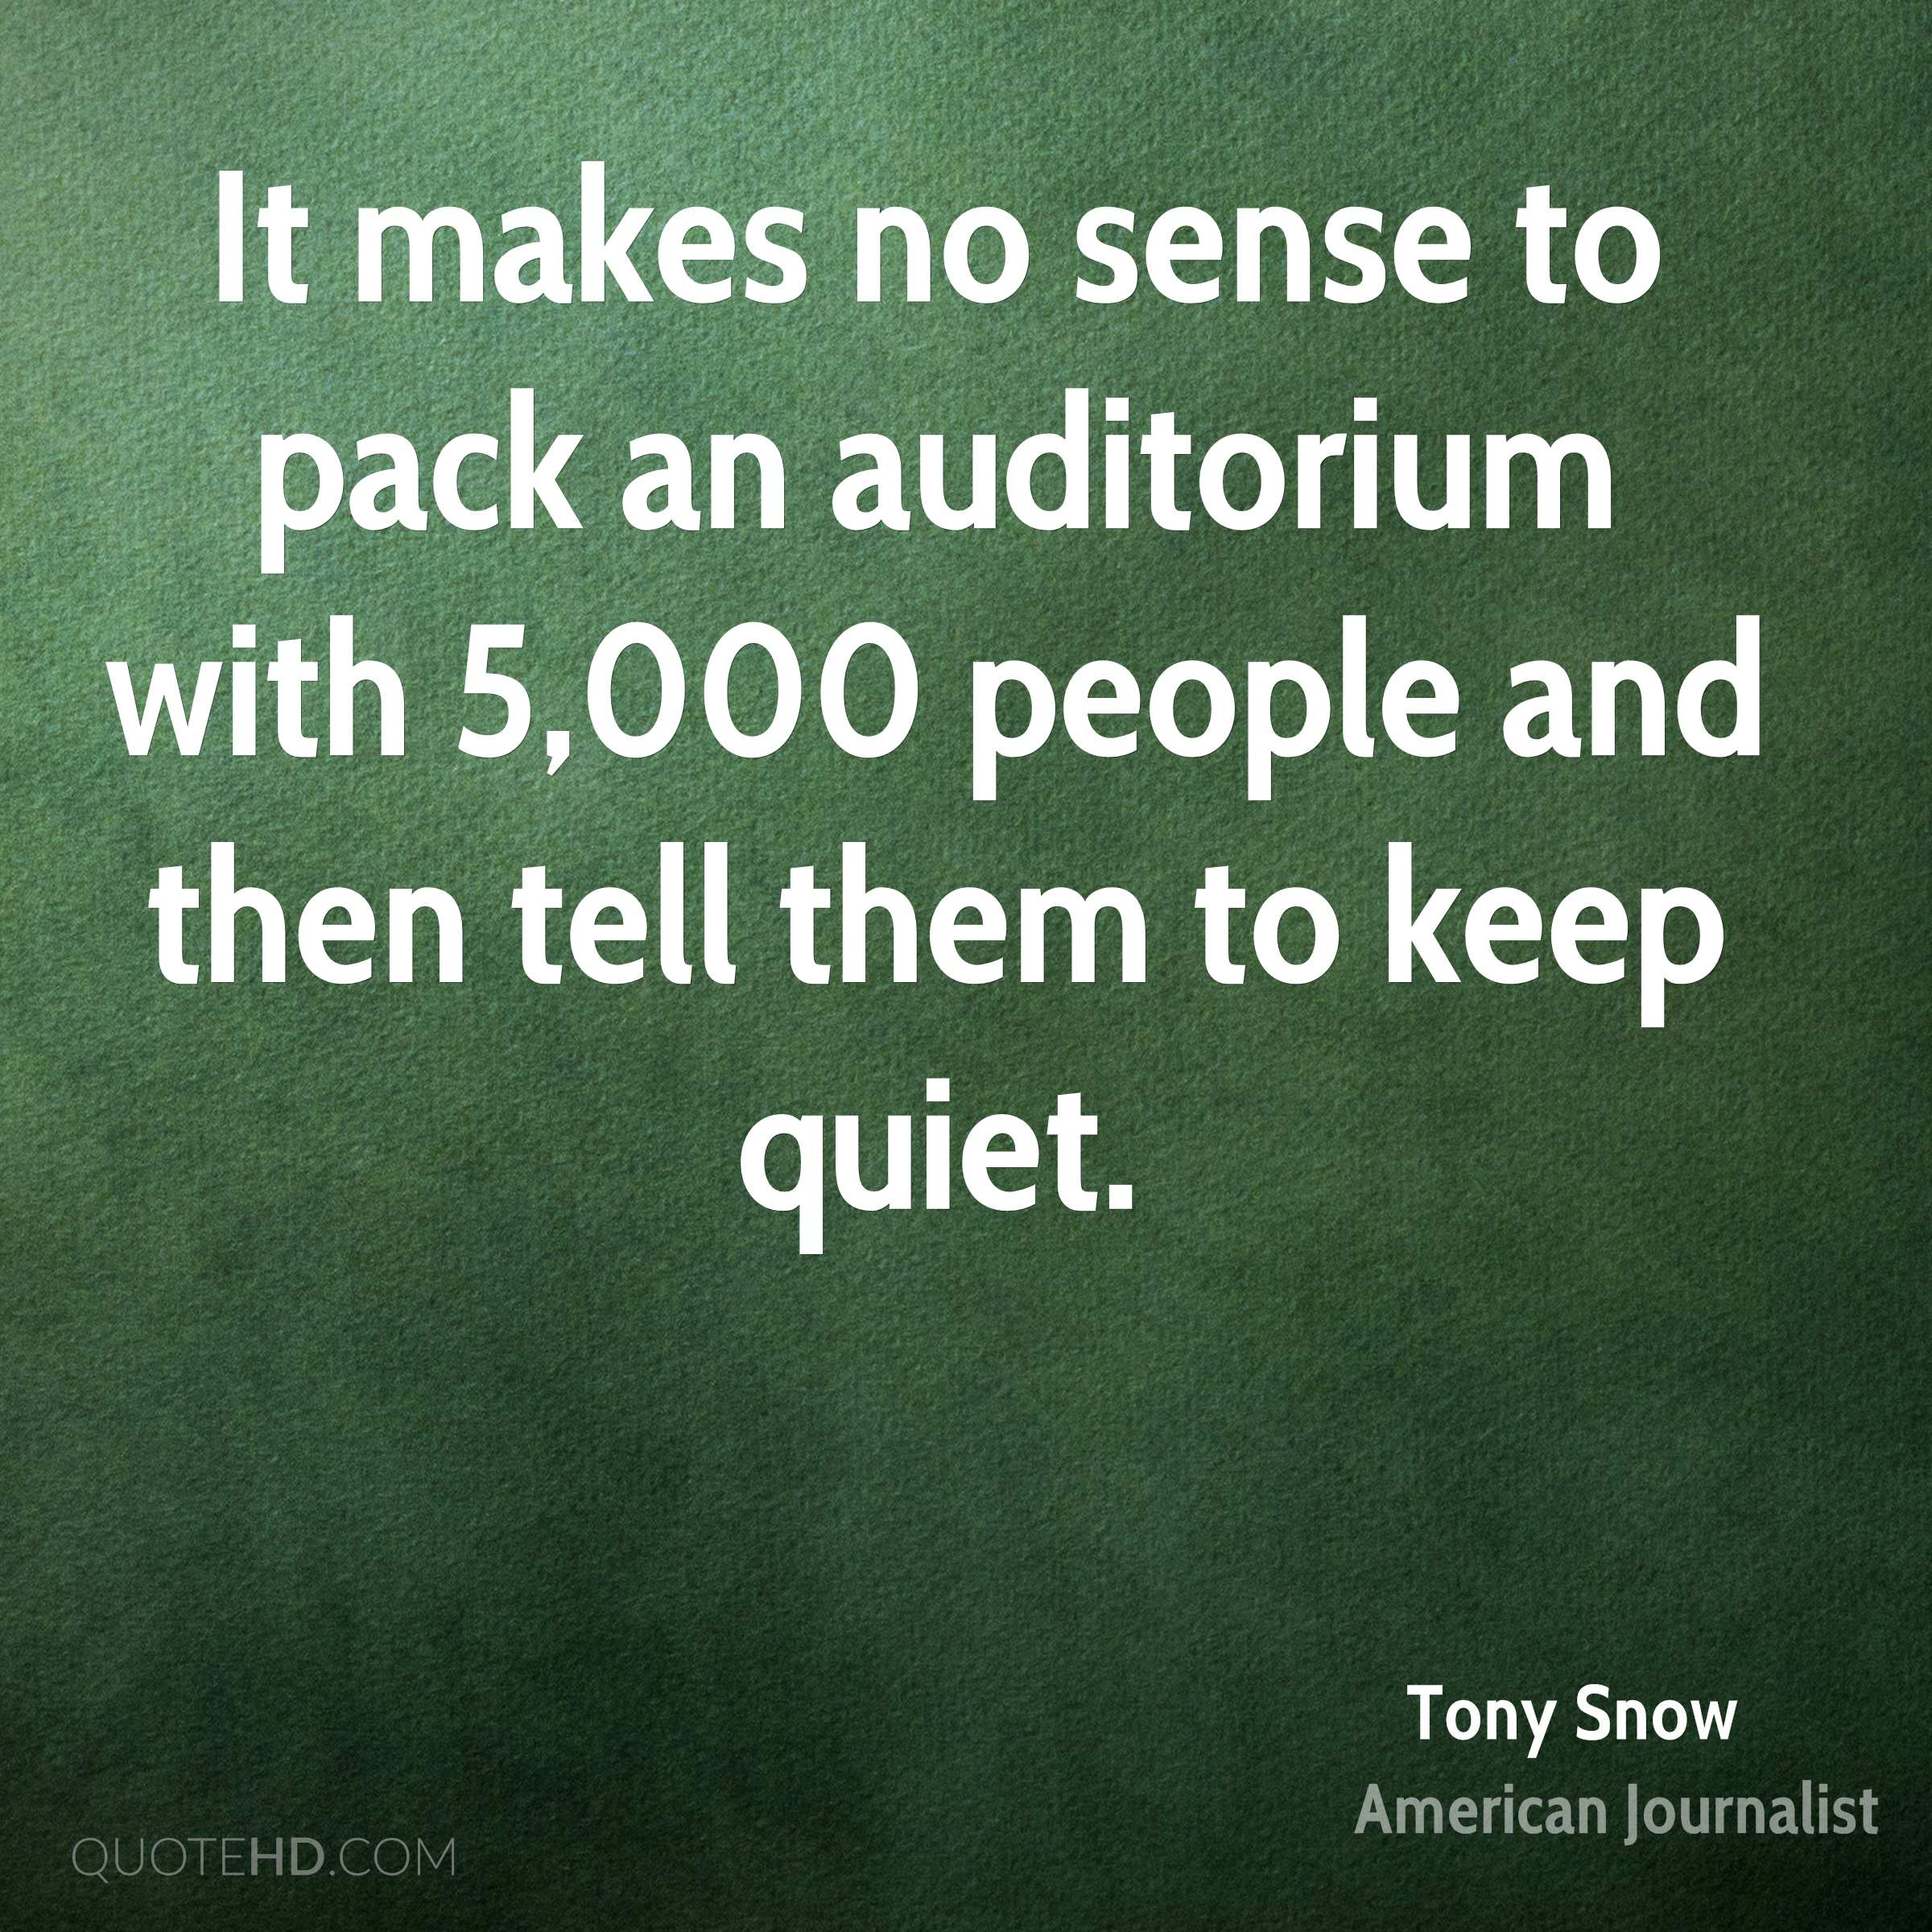 It makes no sense to pack an auditorium with 5,000 people and then tell them to keep quiet.